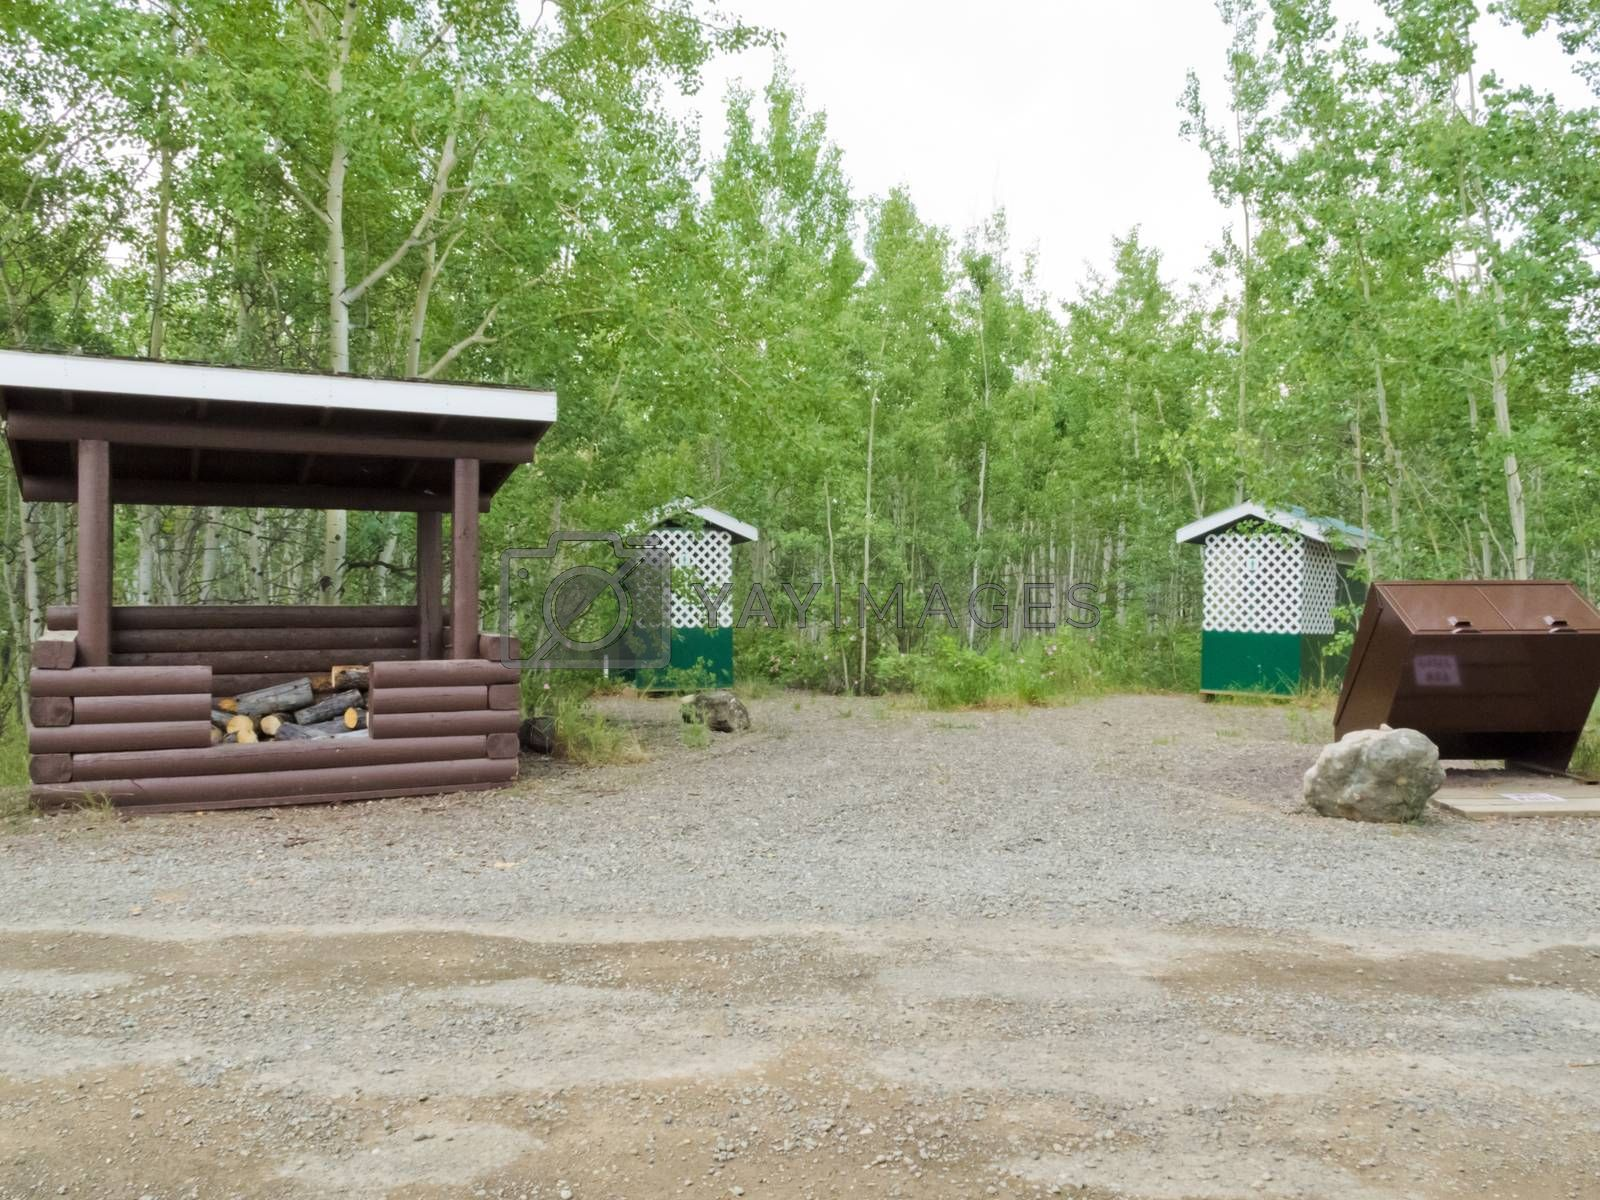 Simple campground facilities, firewood shed, bear-proof garbage bin and pit toilet outhouses on public Yukon Territory Government campground, Yukon, Canada